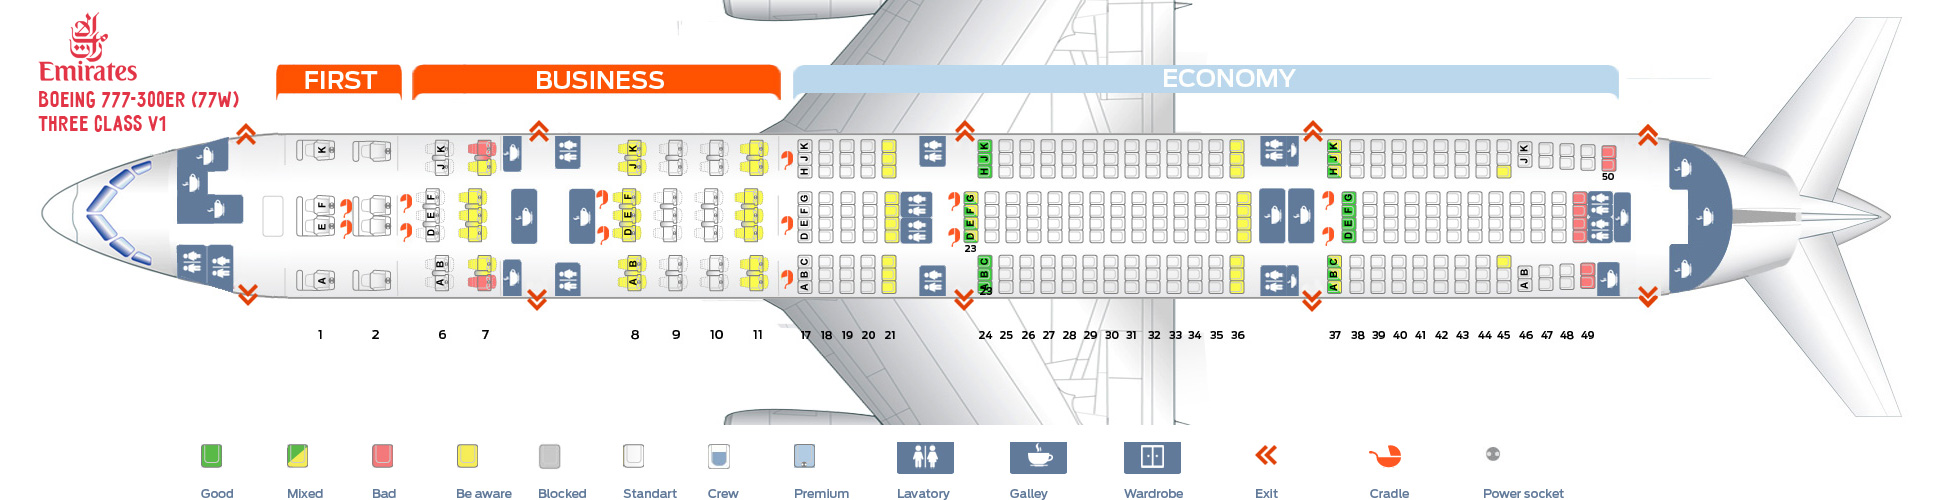 Seat Map Boeing 777-300ER Three class V1 Emirates